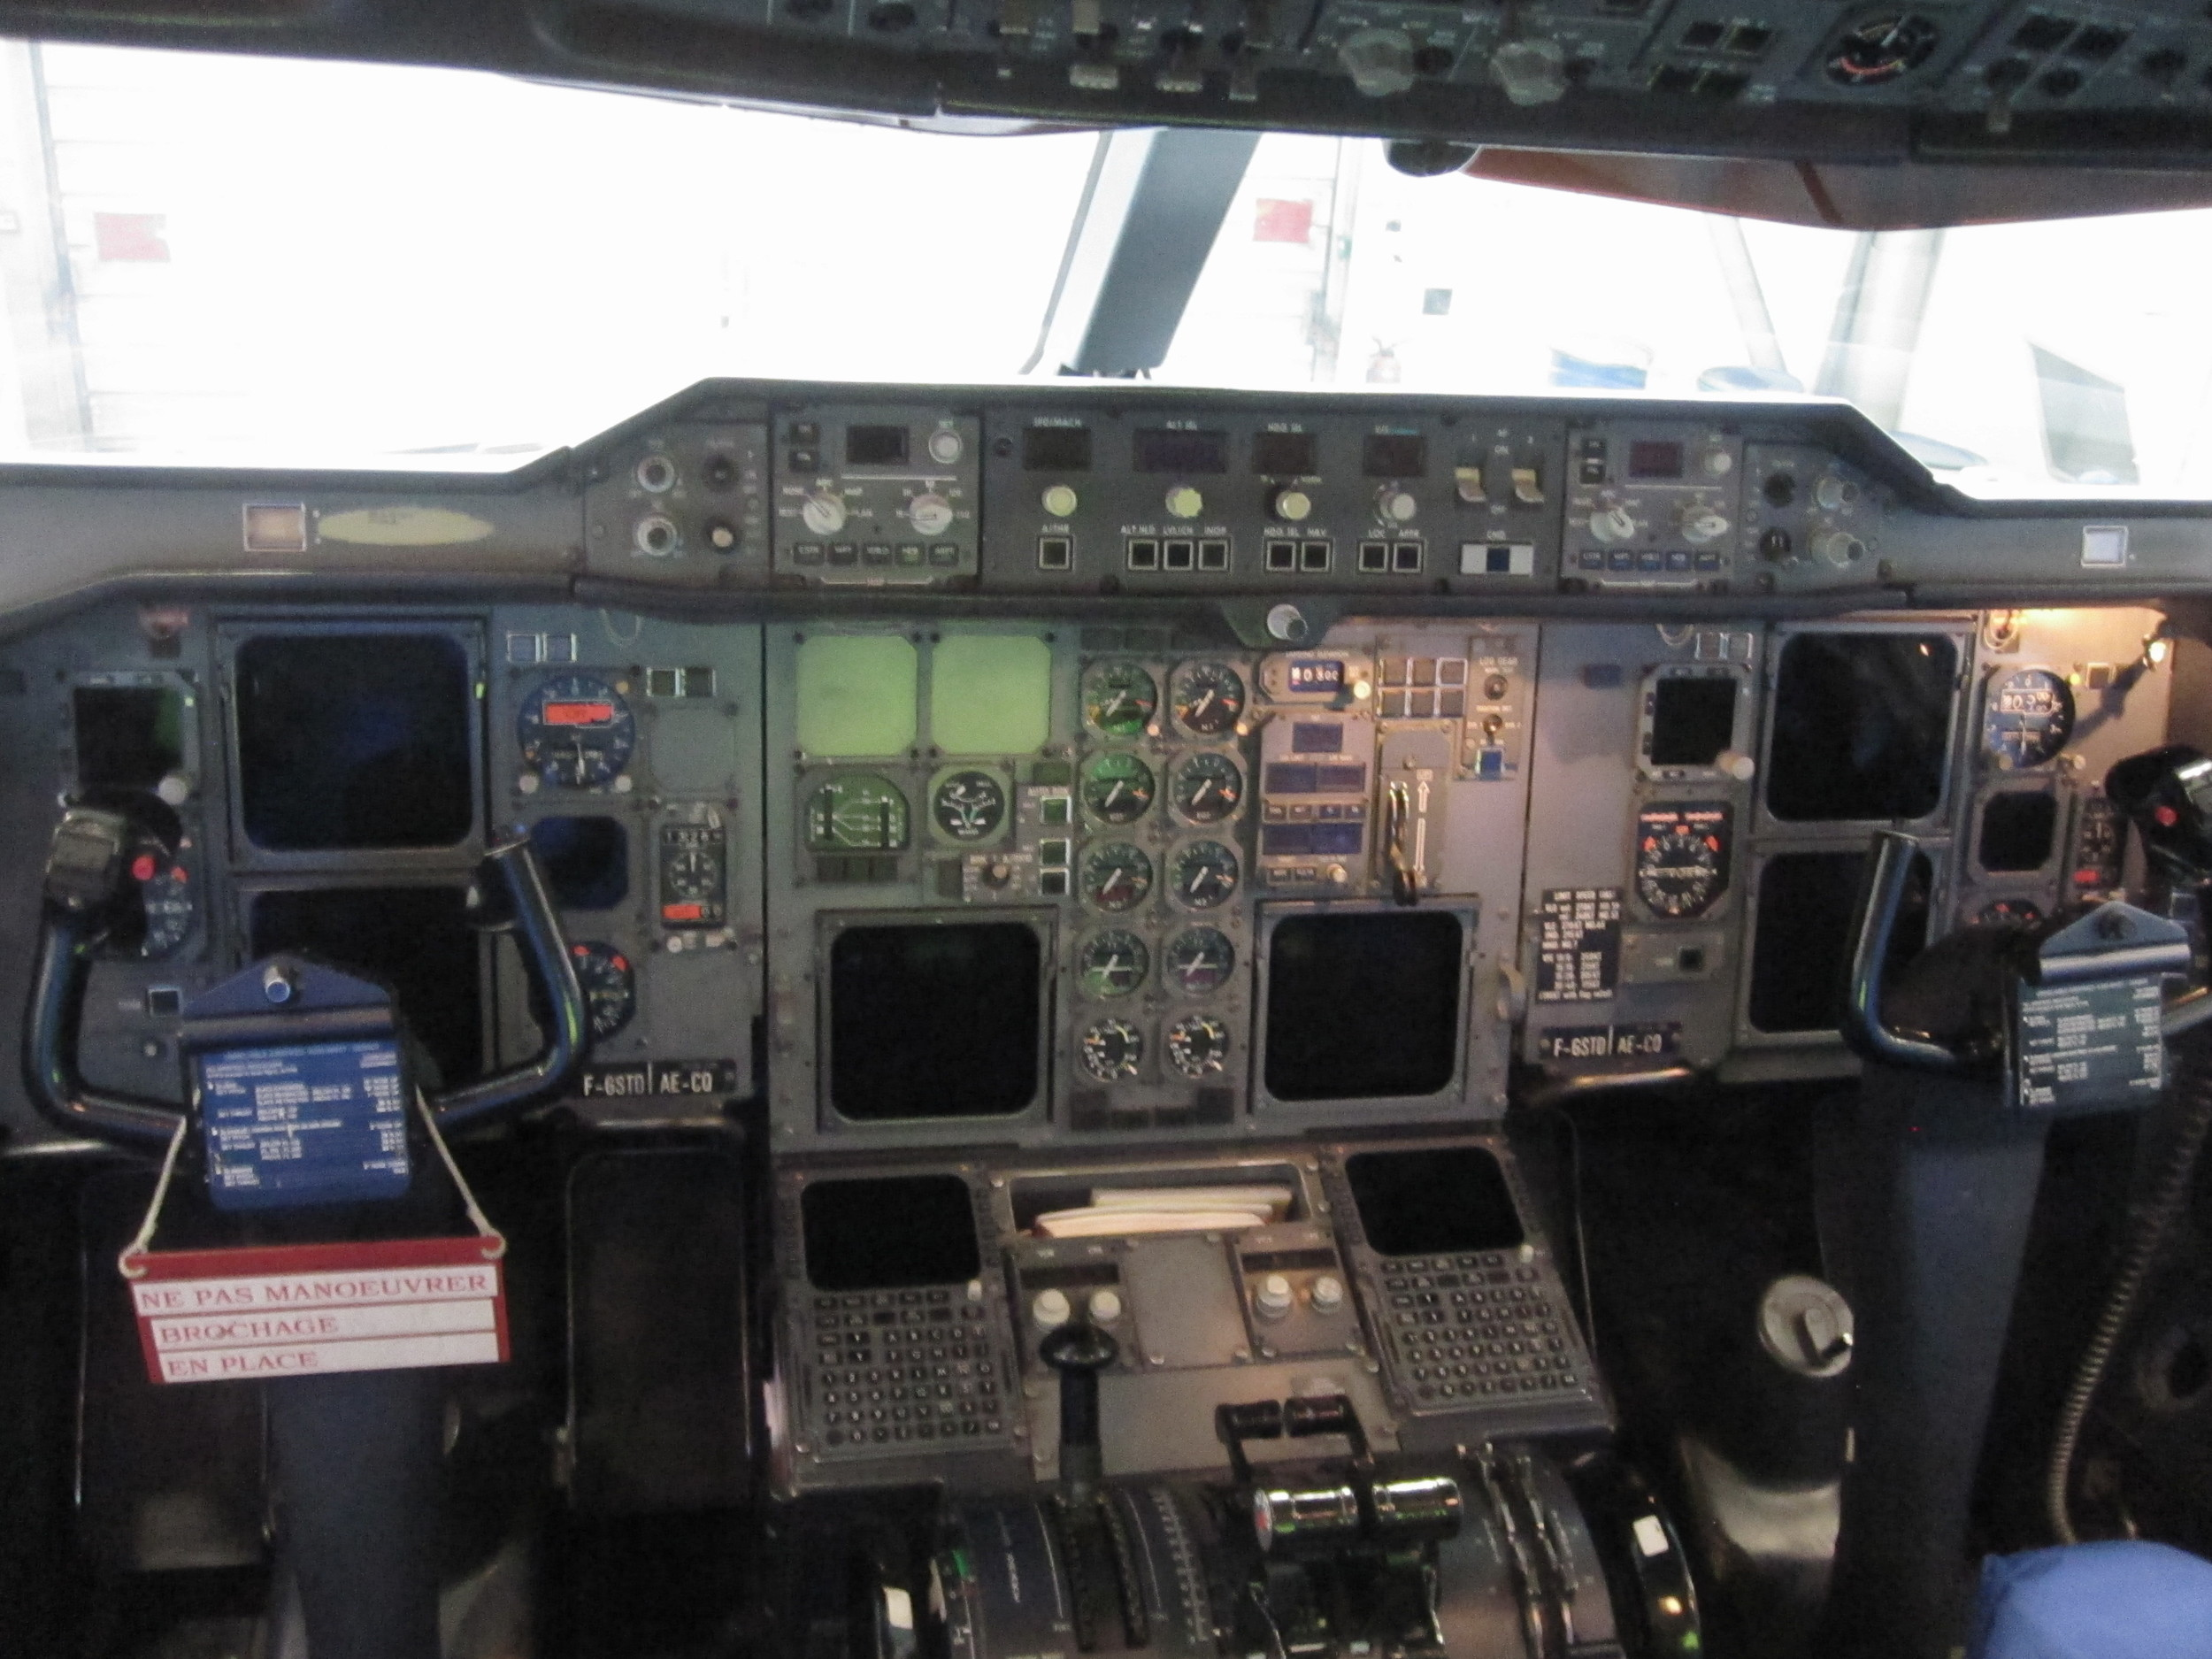 The cockpit of the Beluga has quite a vintage look